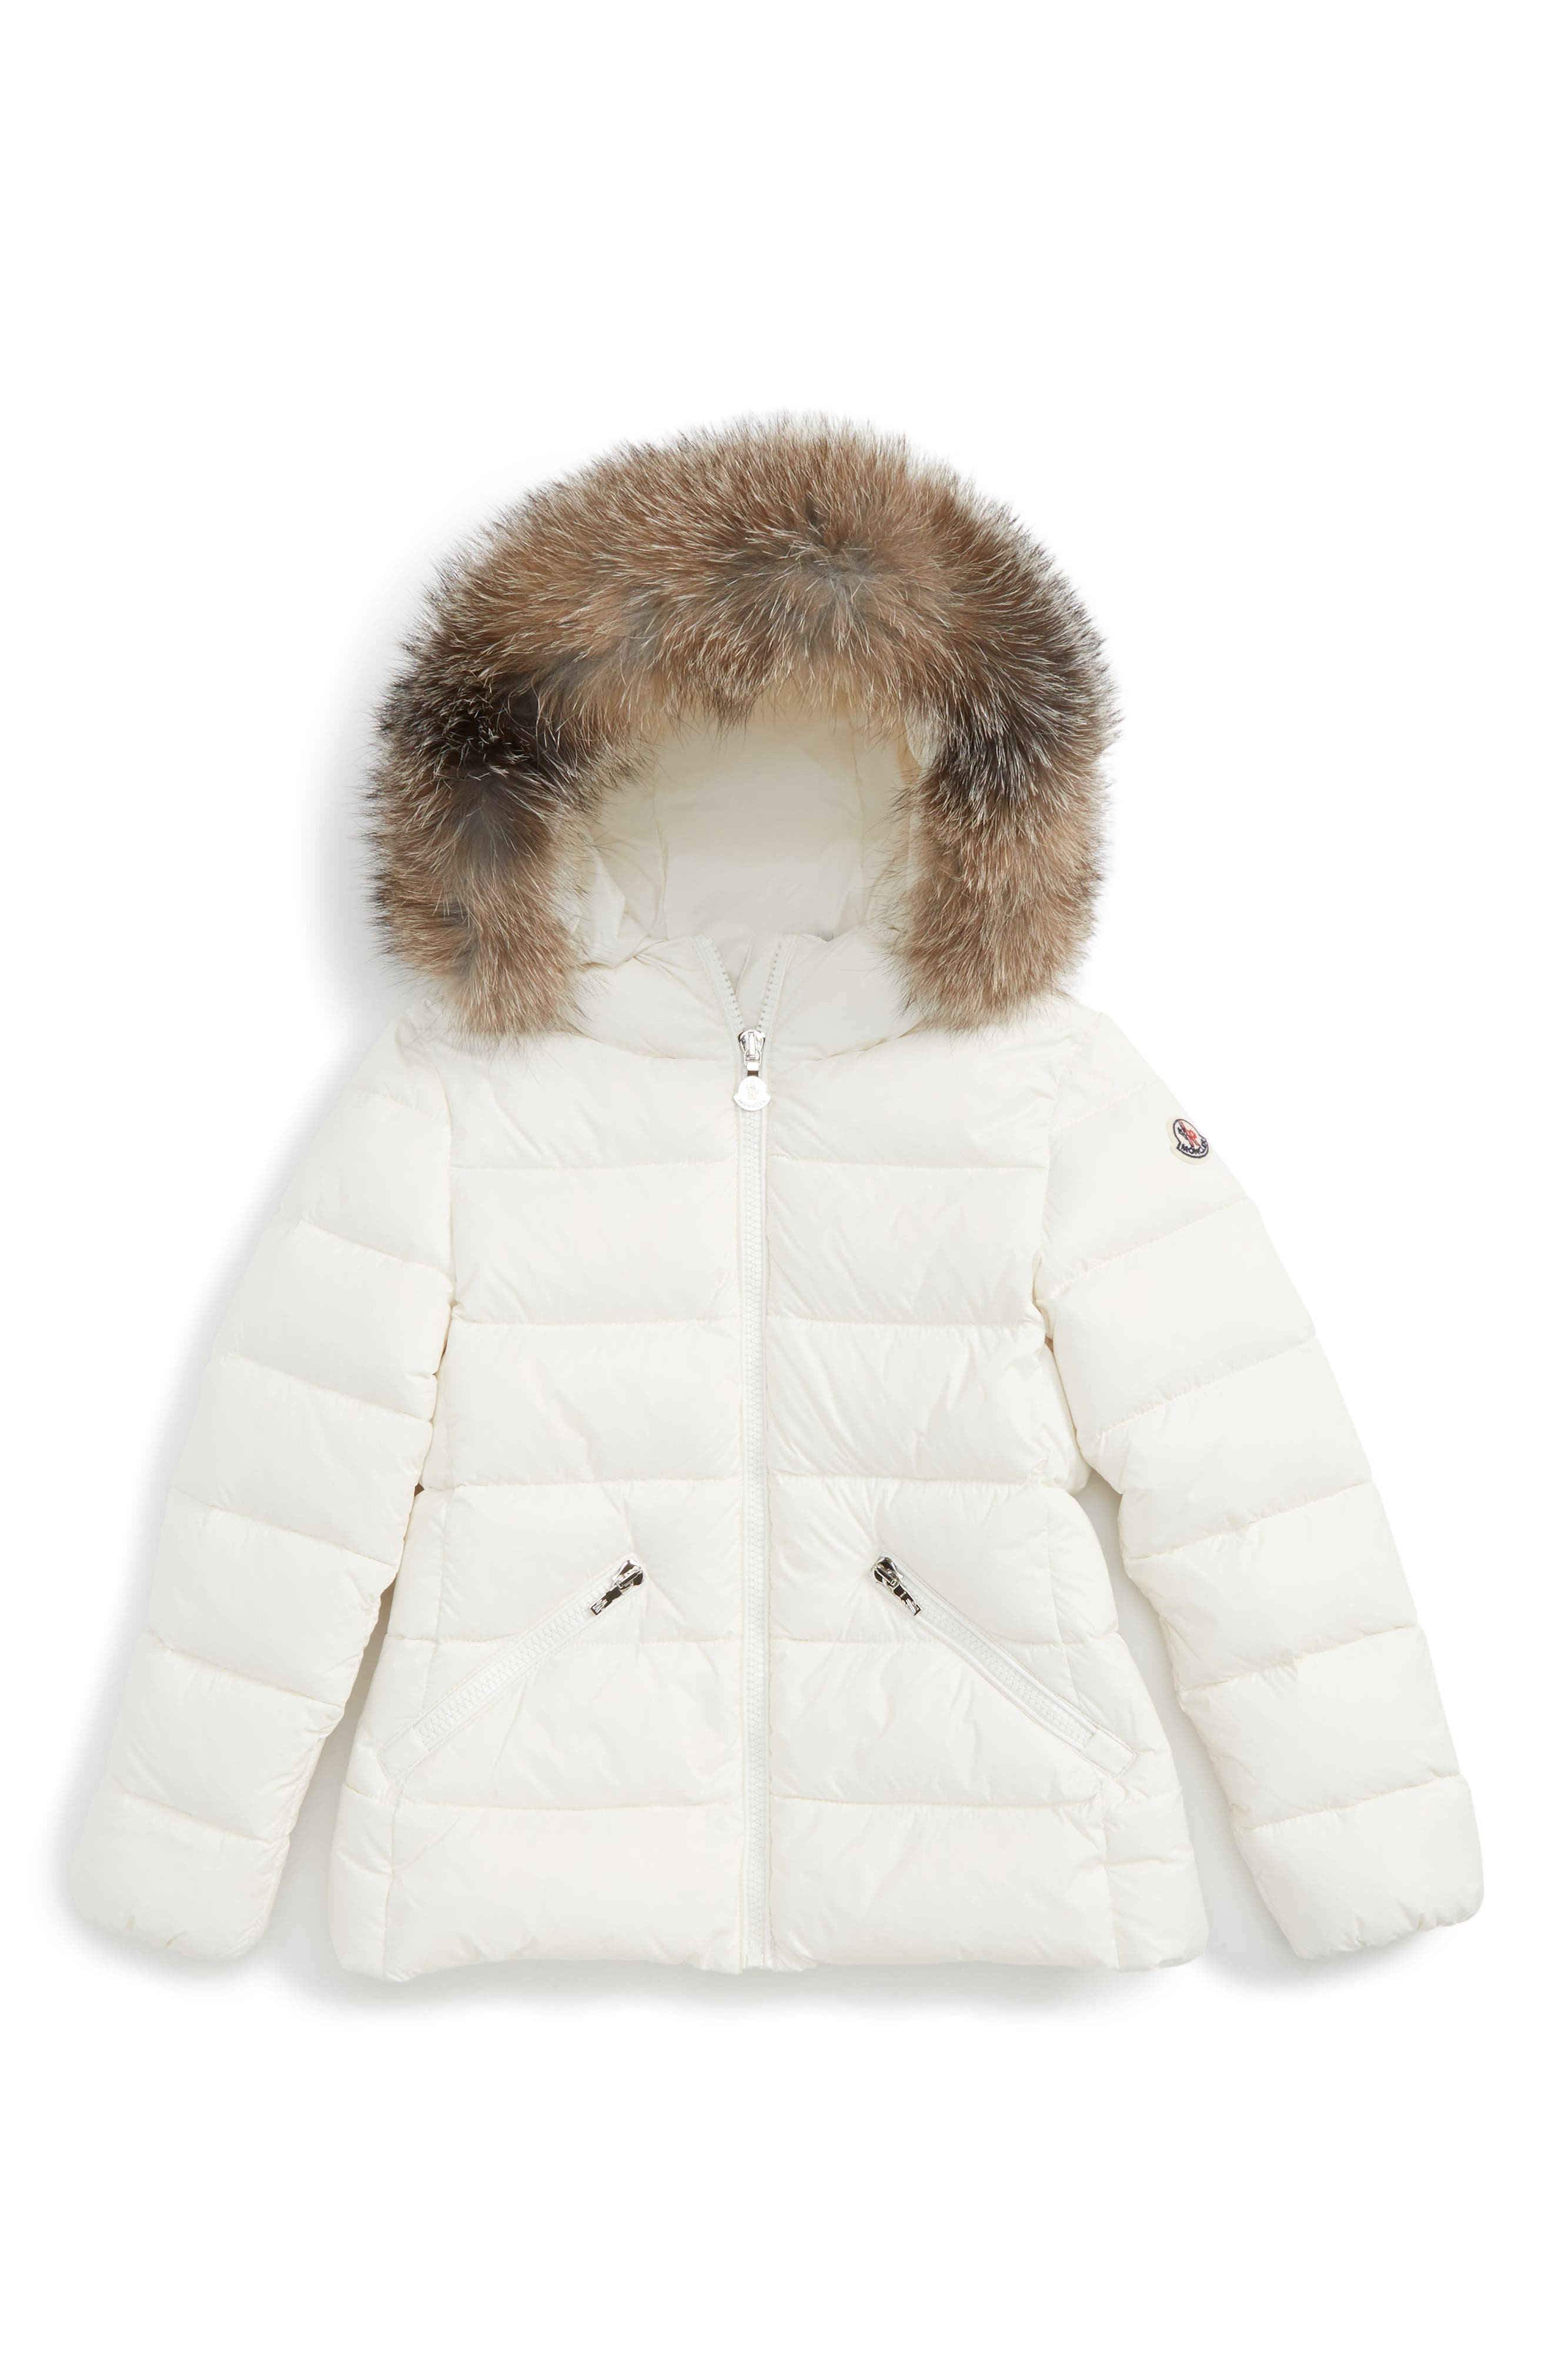 Aimeet Hooded Down Jacket with Genuine Fox Fur,                         Main,                         color, White